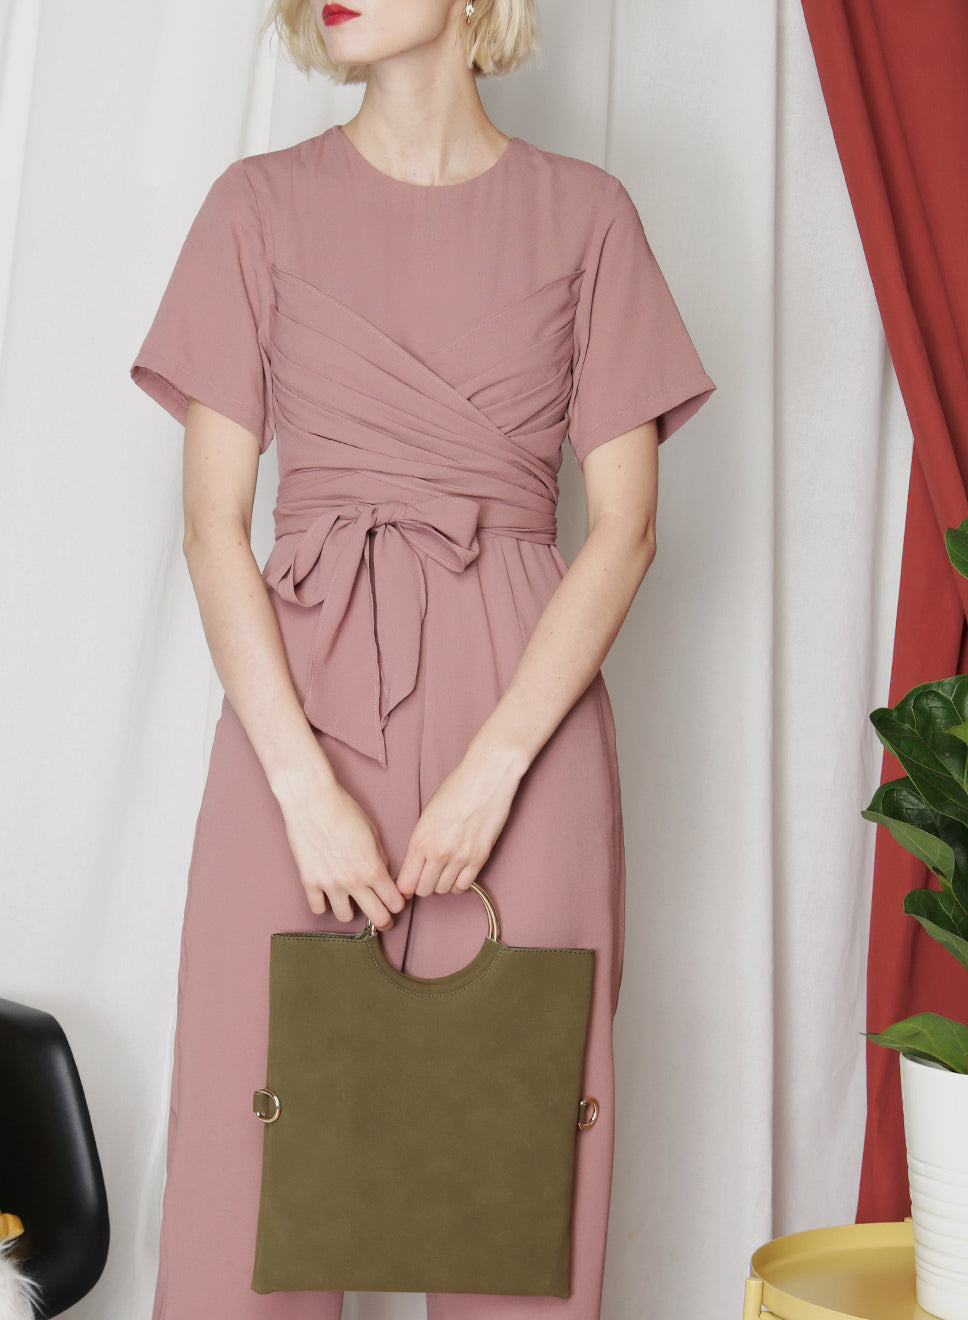 Nova Suede Foldover Clutch (Olive) at $ 32.00 only sold at And Well Dressed Online Fashion Store Singapore